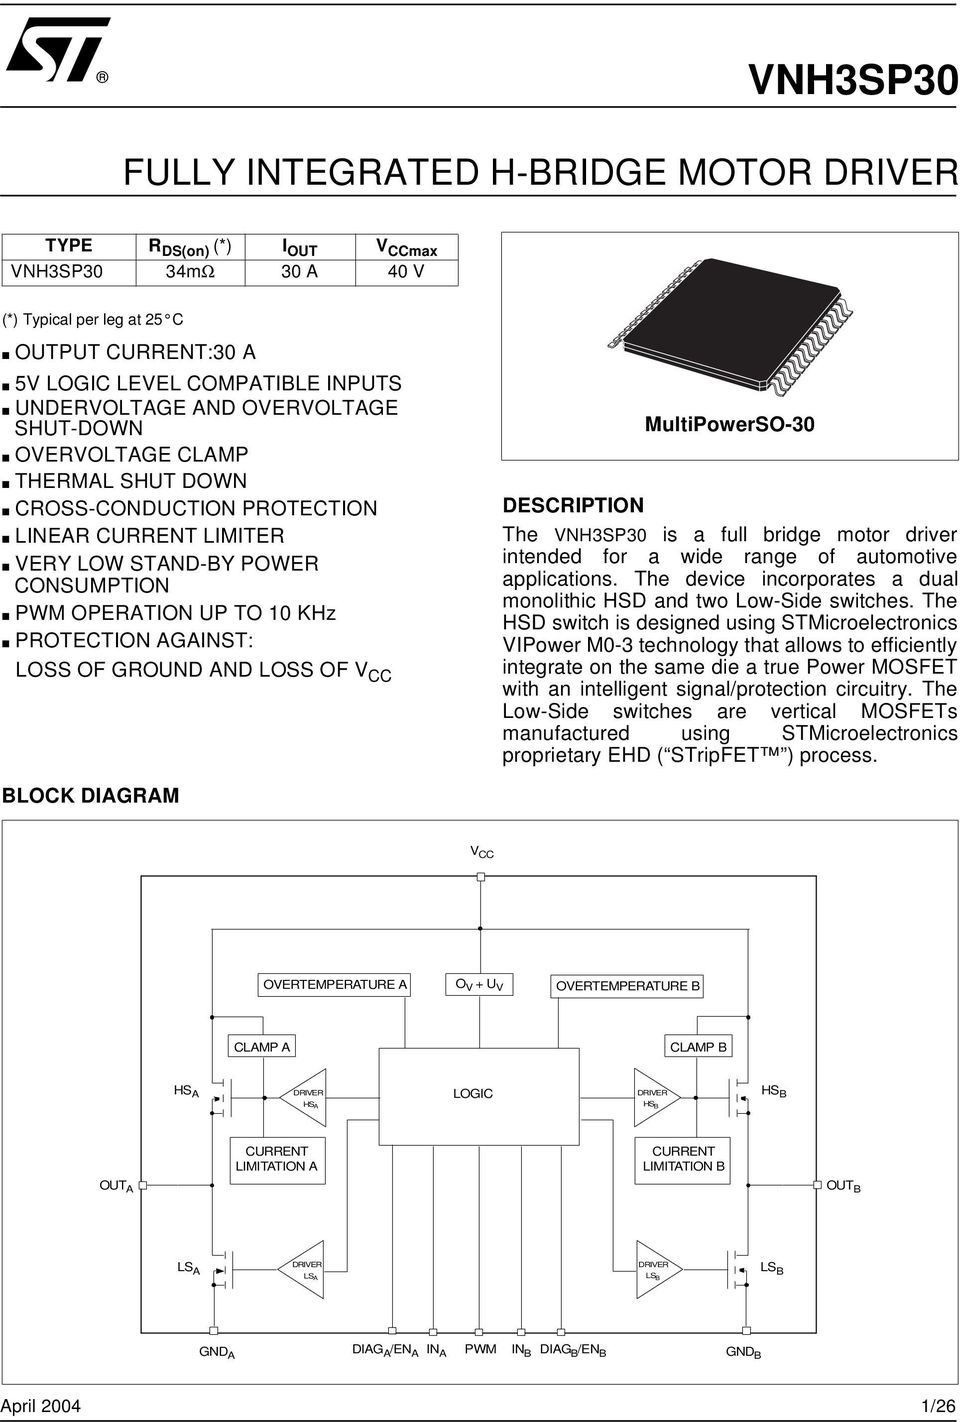 Vnh3sp30 Fully Integrated H Bridge Motor Driver Pdf Logic Overvoltage Protection And Loss Of V Cc Multipowerso 3 Description The Vnh3sp3 Is A Full